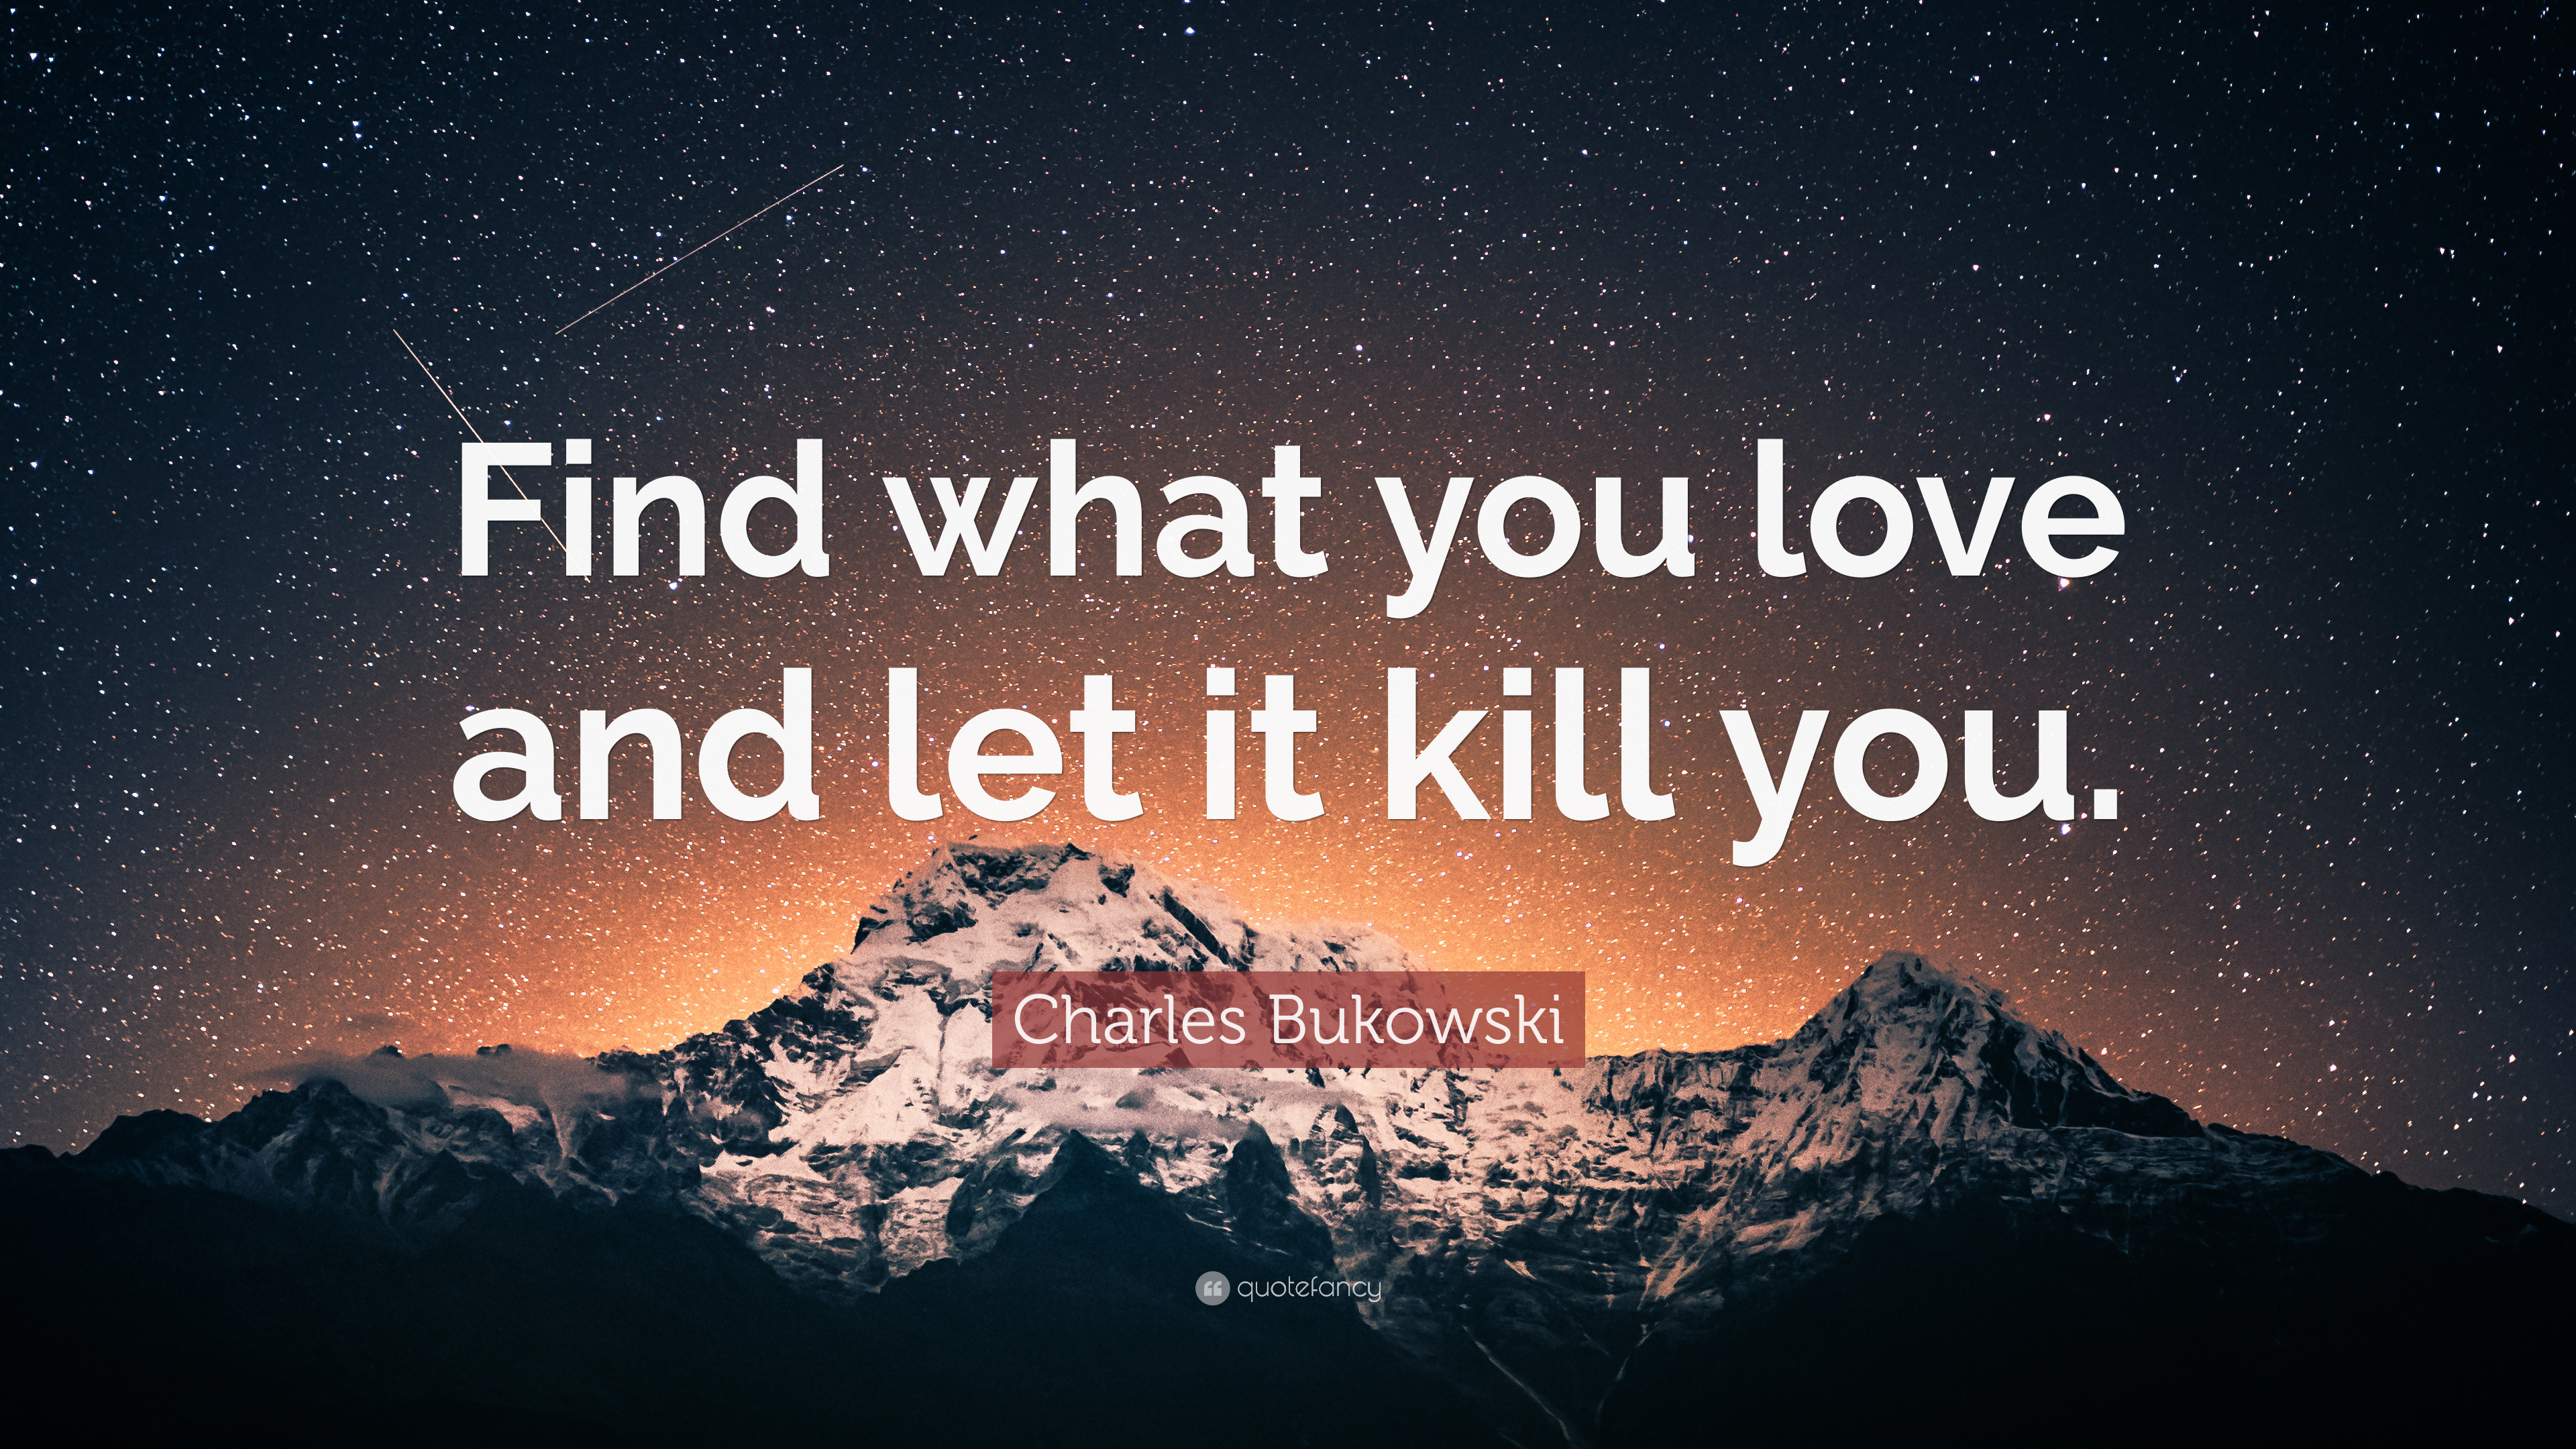 Find what you love and let it kill you quotes